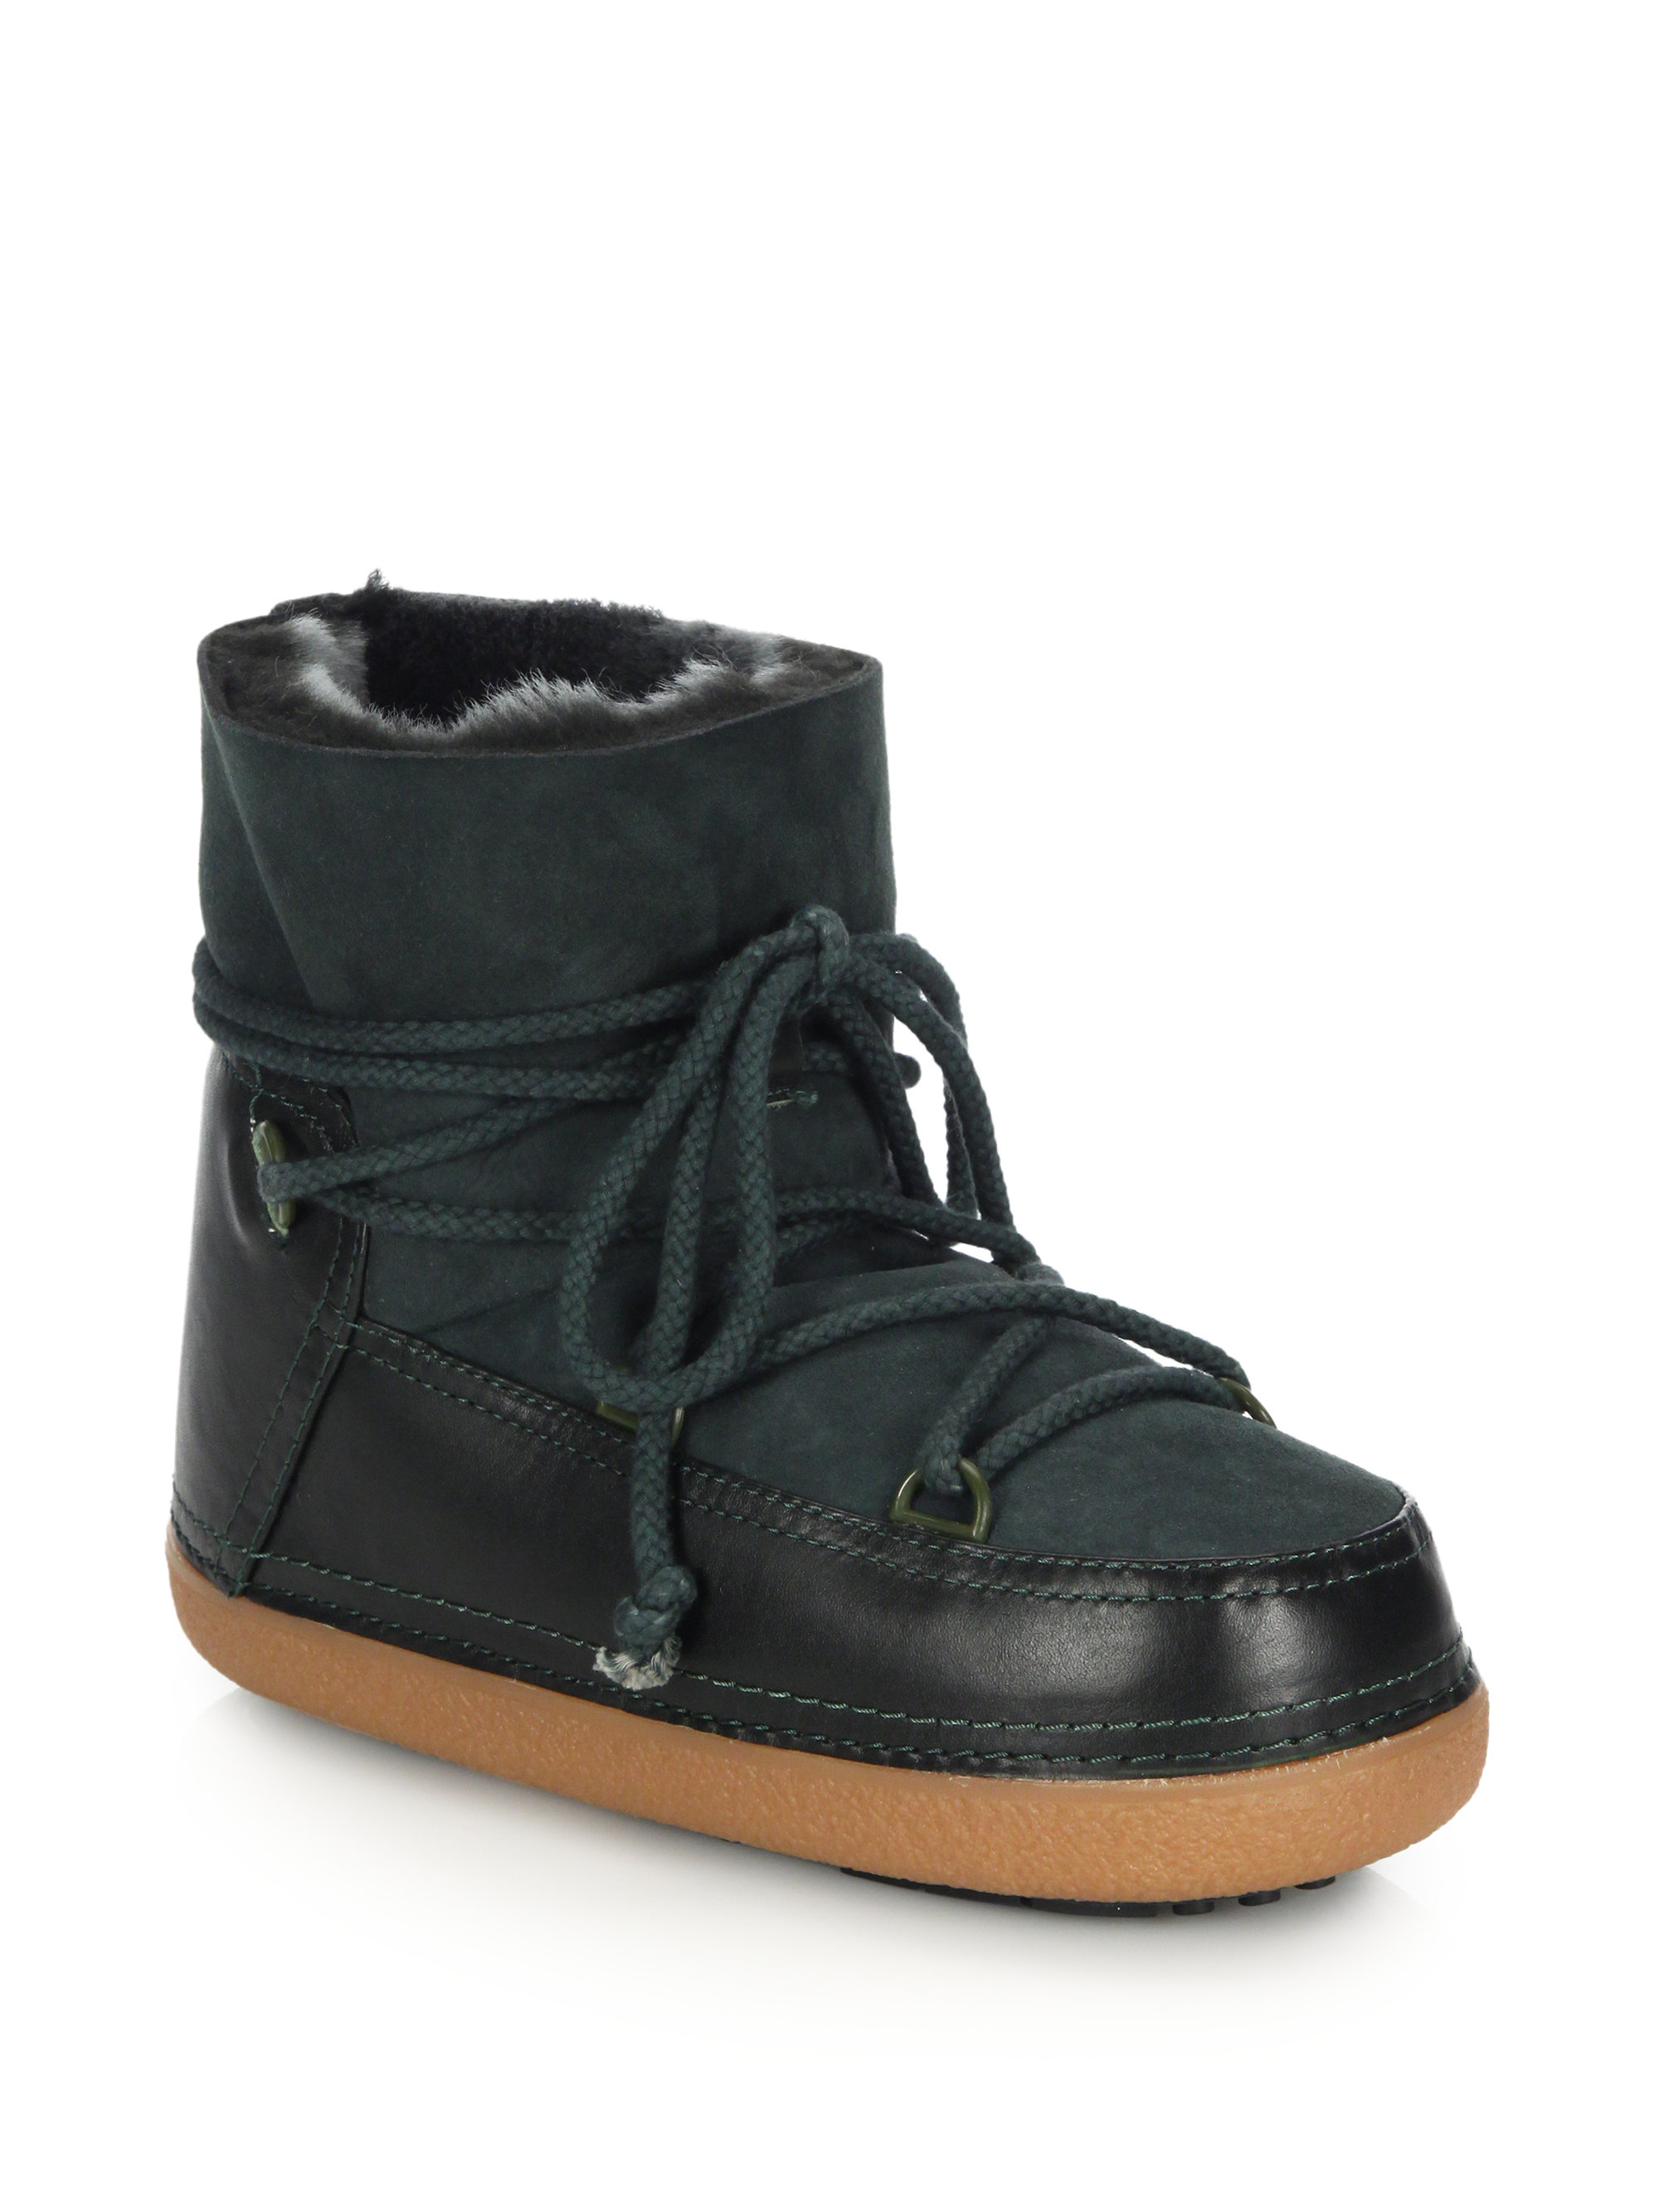 ikkii green suede and leather moon boots lyst